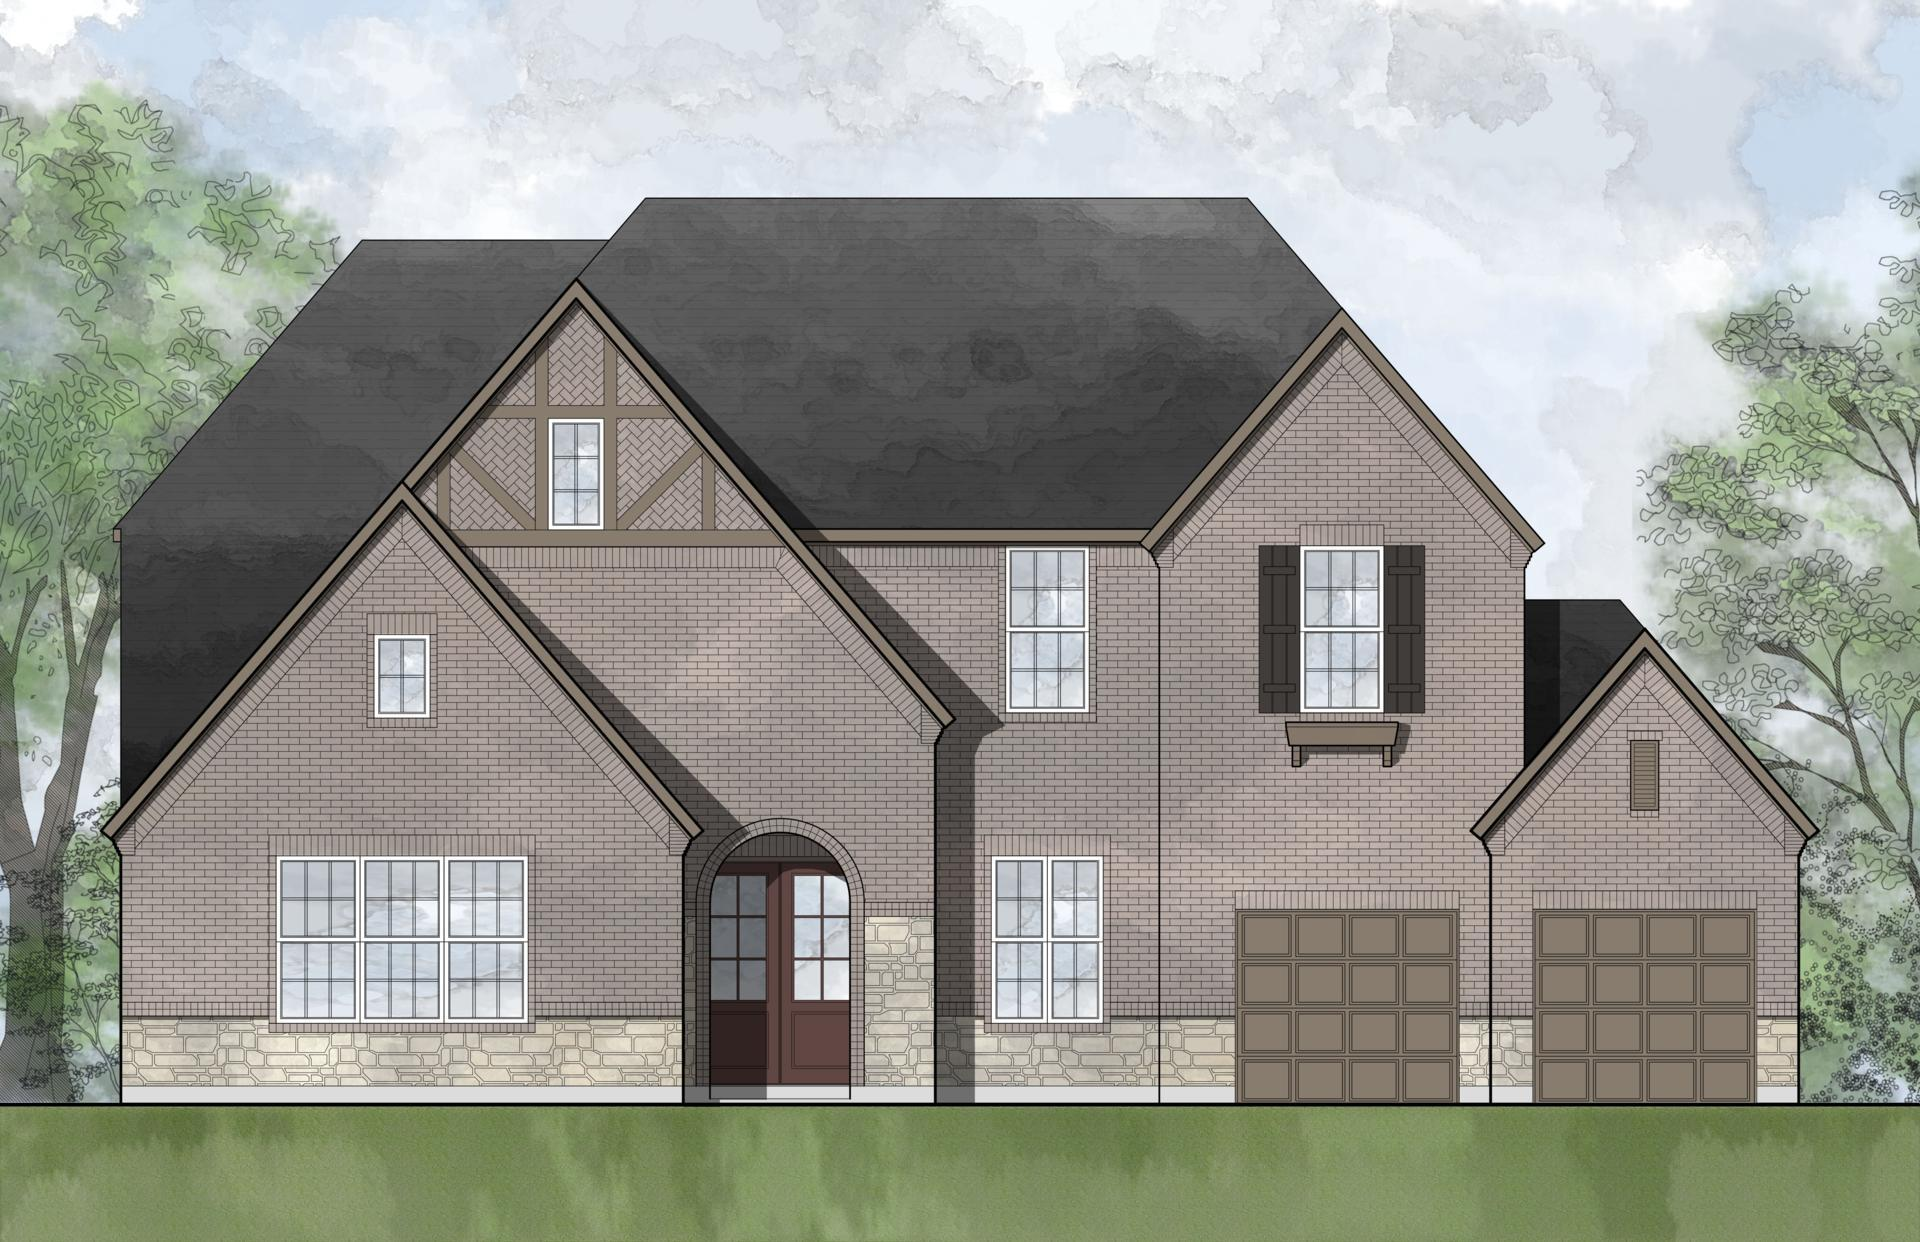 Single Family for Active at Harper's Preserve - Briargate Model Home Coming Soon! Conroe, Texas 77385 United States